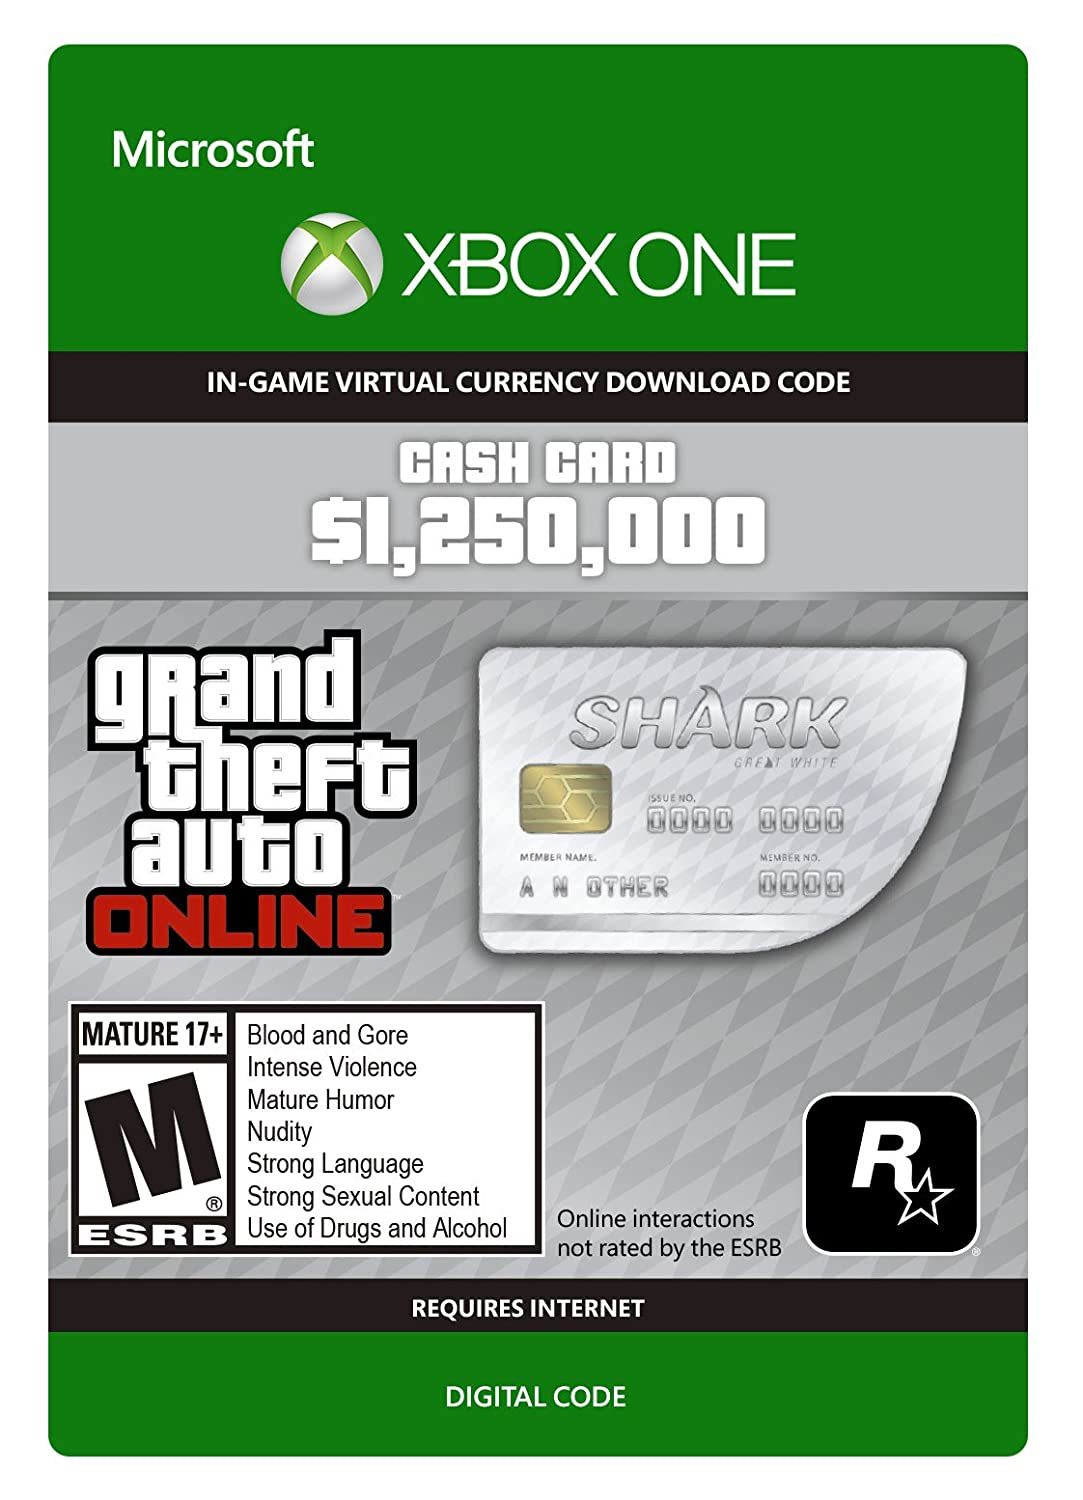 Grand Theft Auto V: Great White Shark Cash Card for Xbox One (Digital Code) for Xbox One image